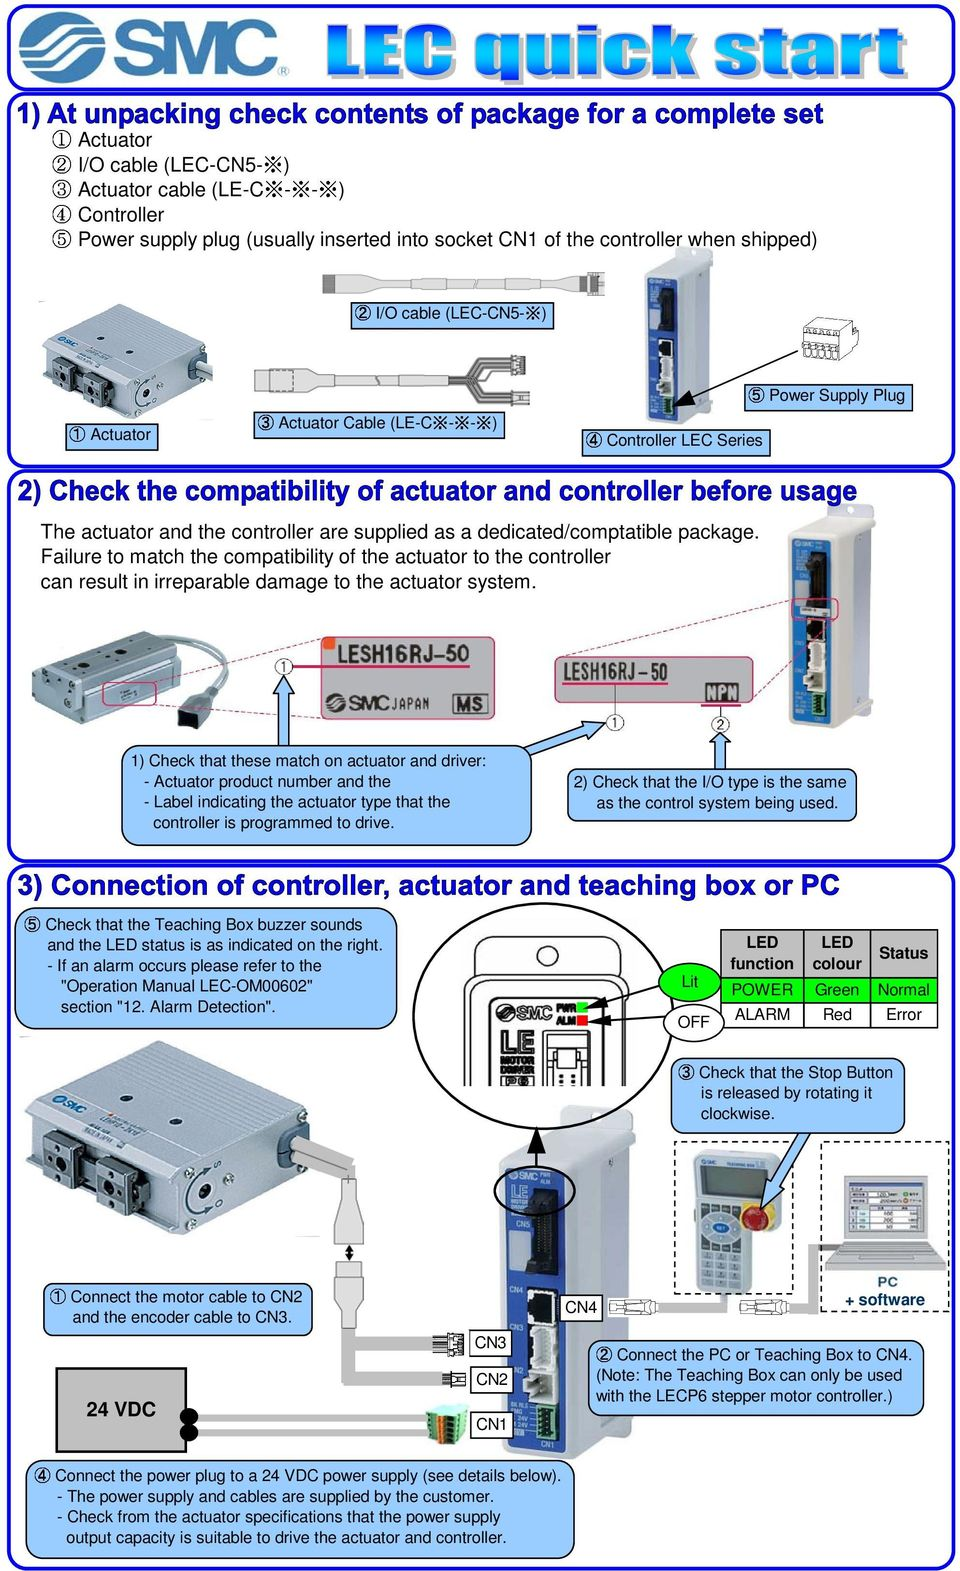 Failure to match the compatibility of the actuator to the controller can result in irreparable damage to the actuator system.